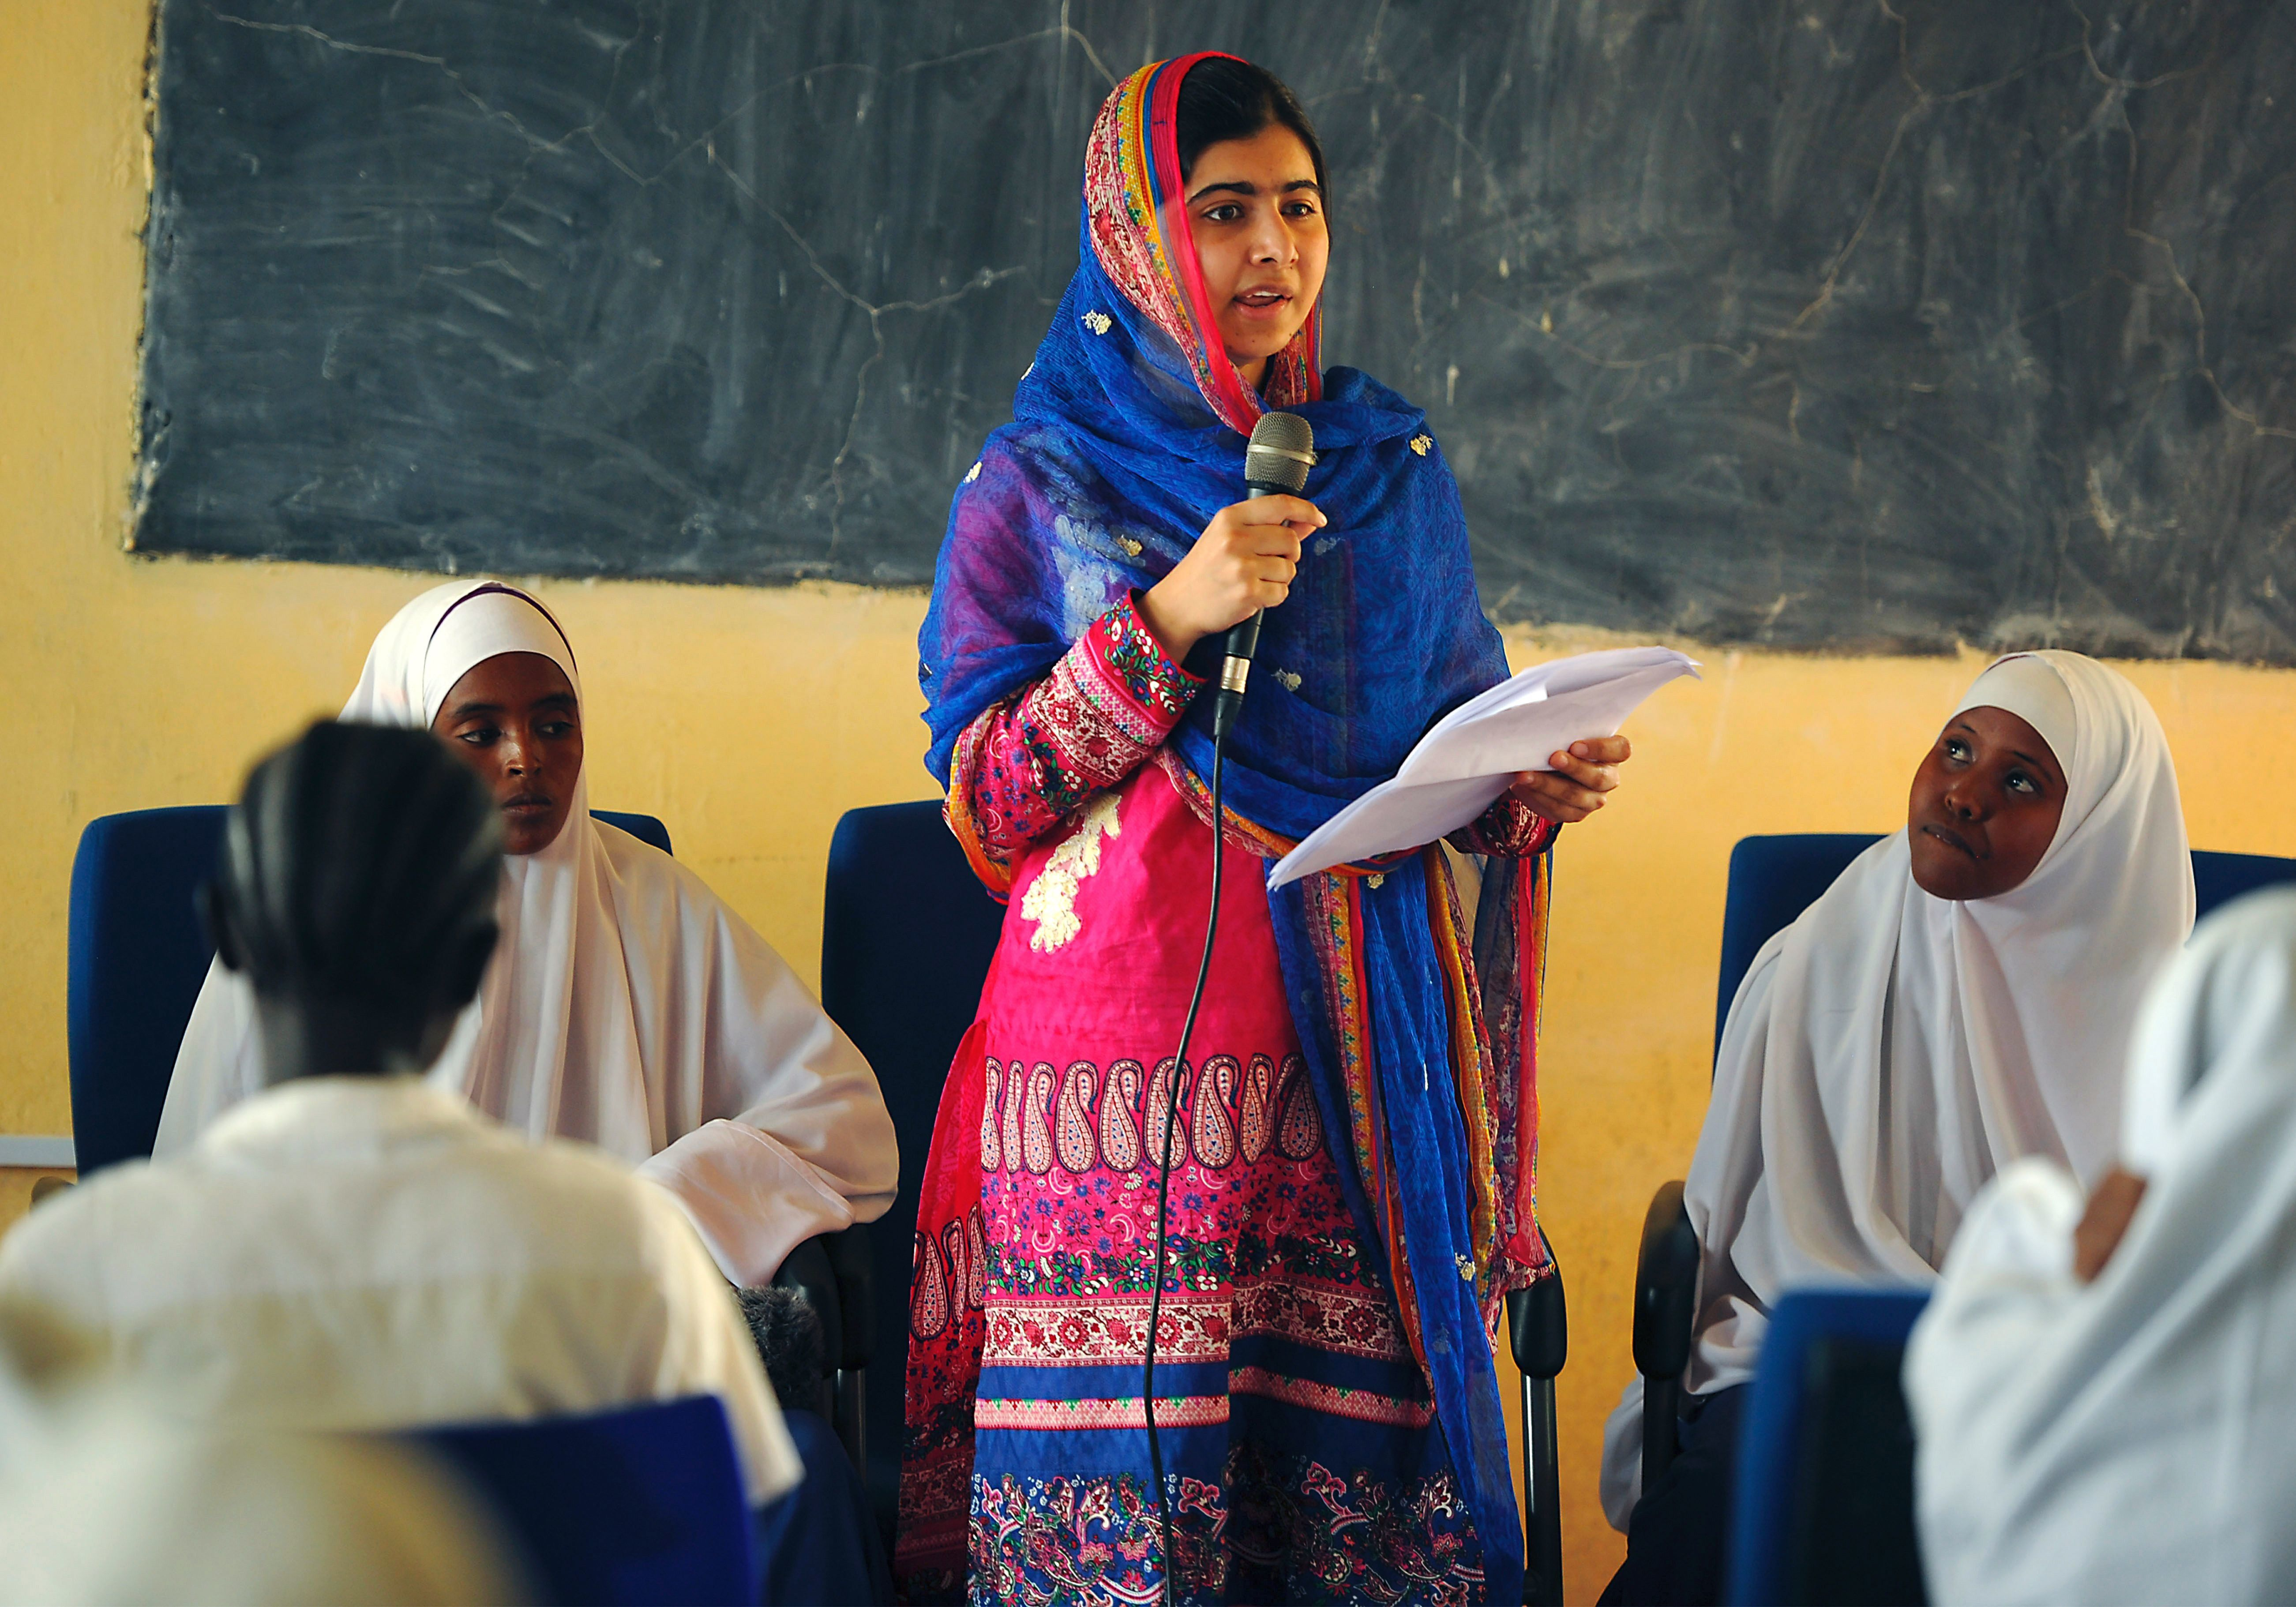 Pakistani activist for female education and the youngest-ever Nobel Prize laureate Malala Yousafzai addresses young refugees at Kenya's sprawling Dadaab refugee complex during a visit organised by the UN High Commissioner for Refugees, in Garissa on July 12, 2016. / AFP / TONY KARUMBA        (Photo credit should read TONY KARUMBA/AFP/Getty Images)